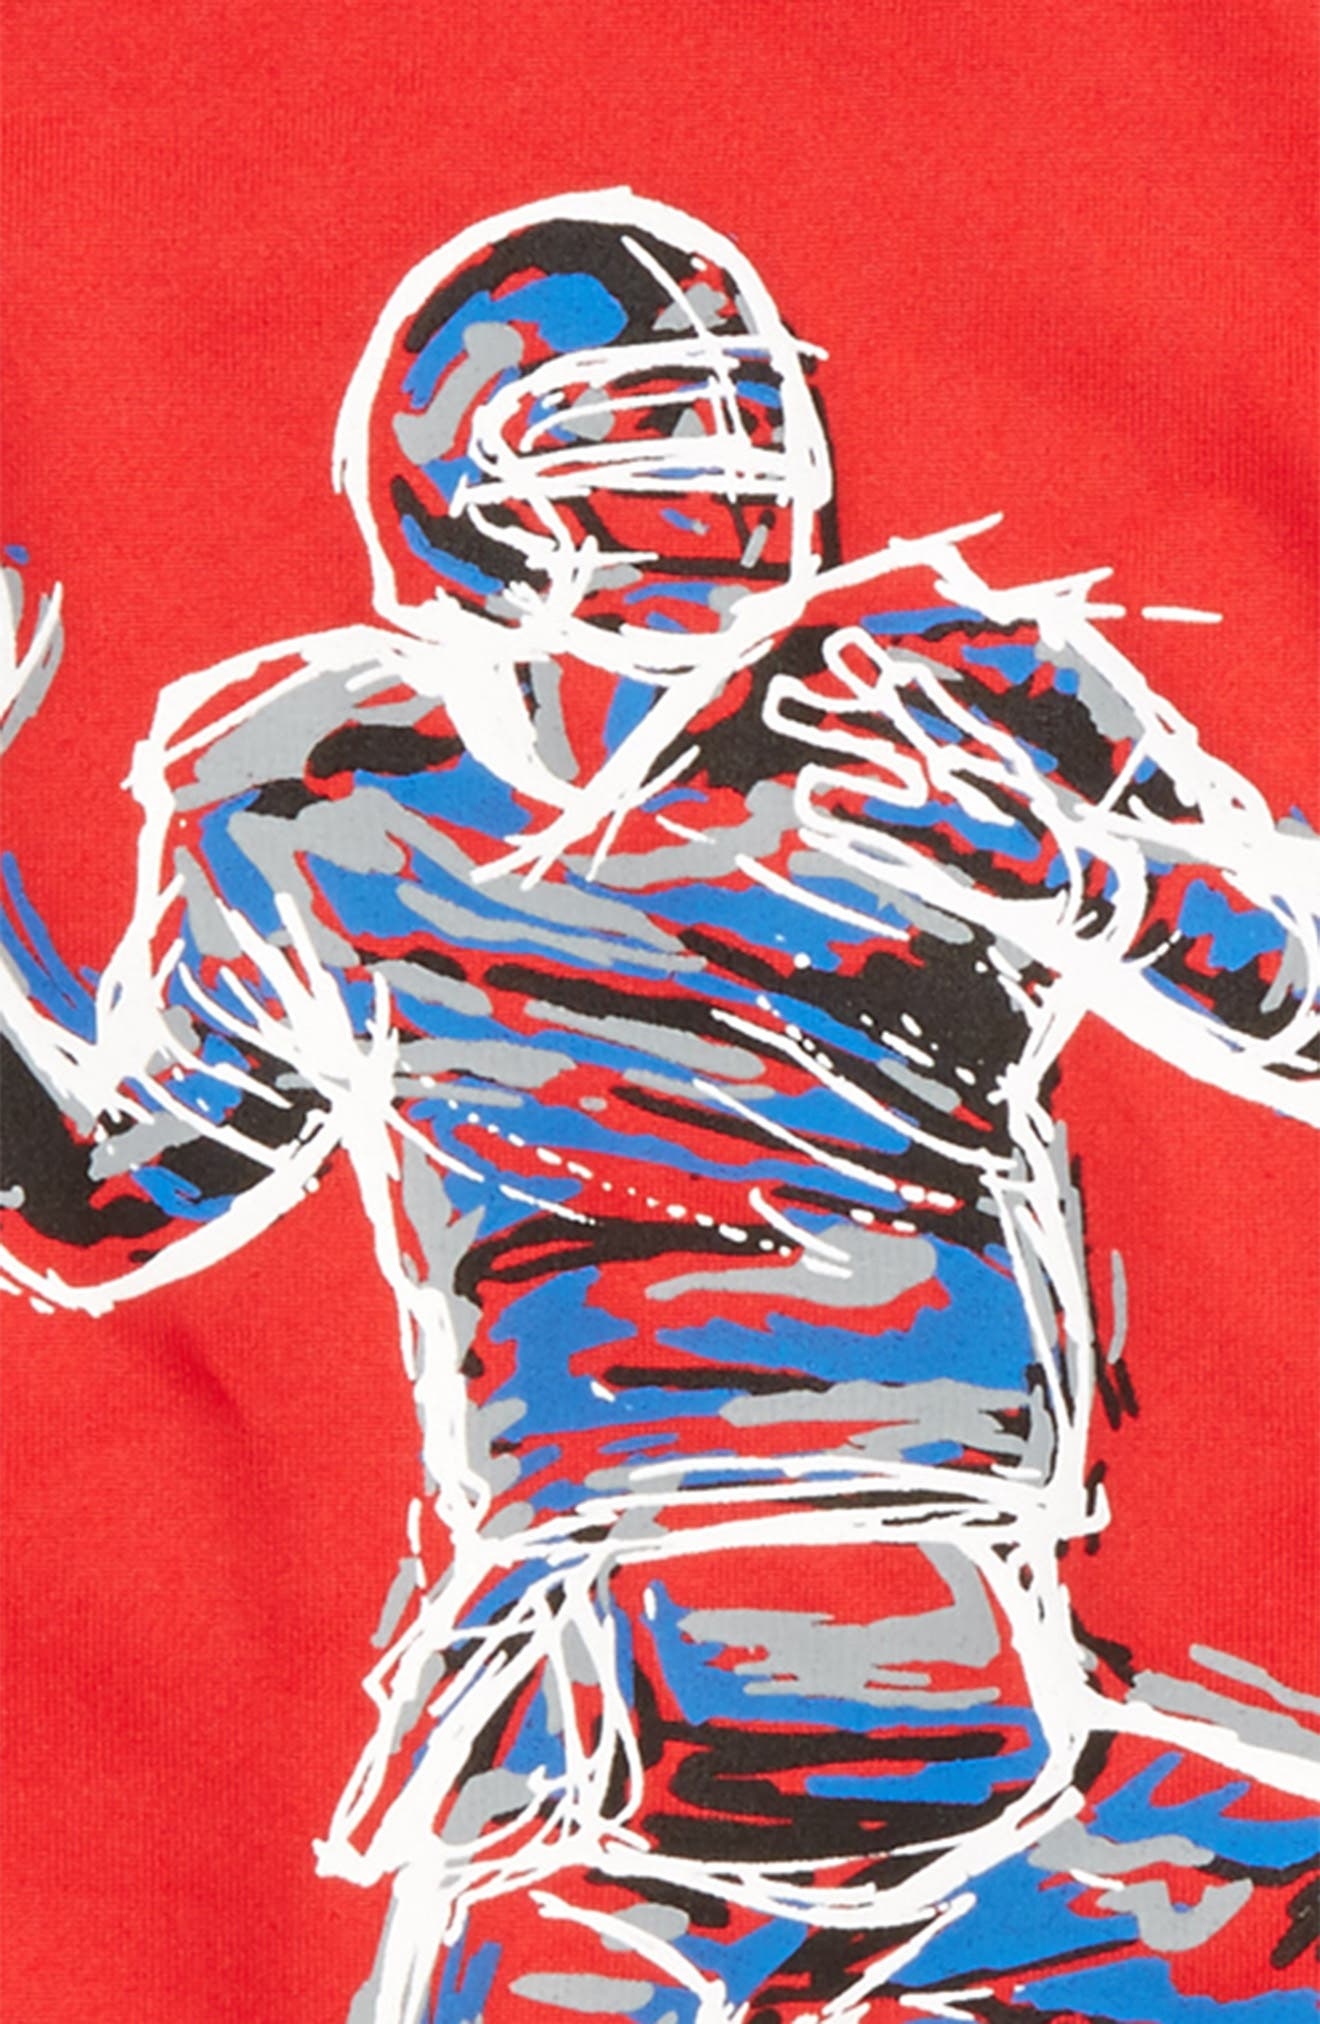 Illuminated QB Glow in the Dark T-Shirt,                             Alternate thumbnail 3, color,                             Red